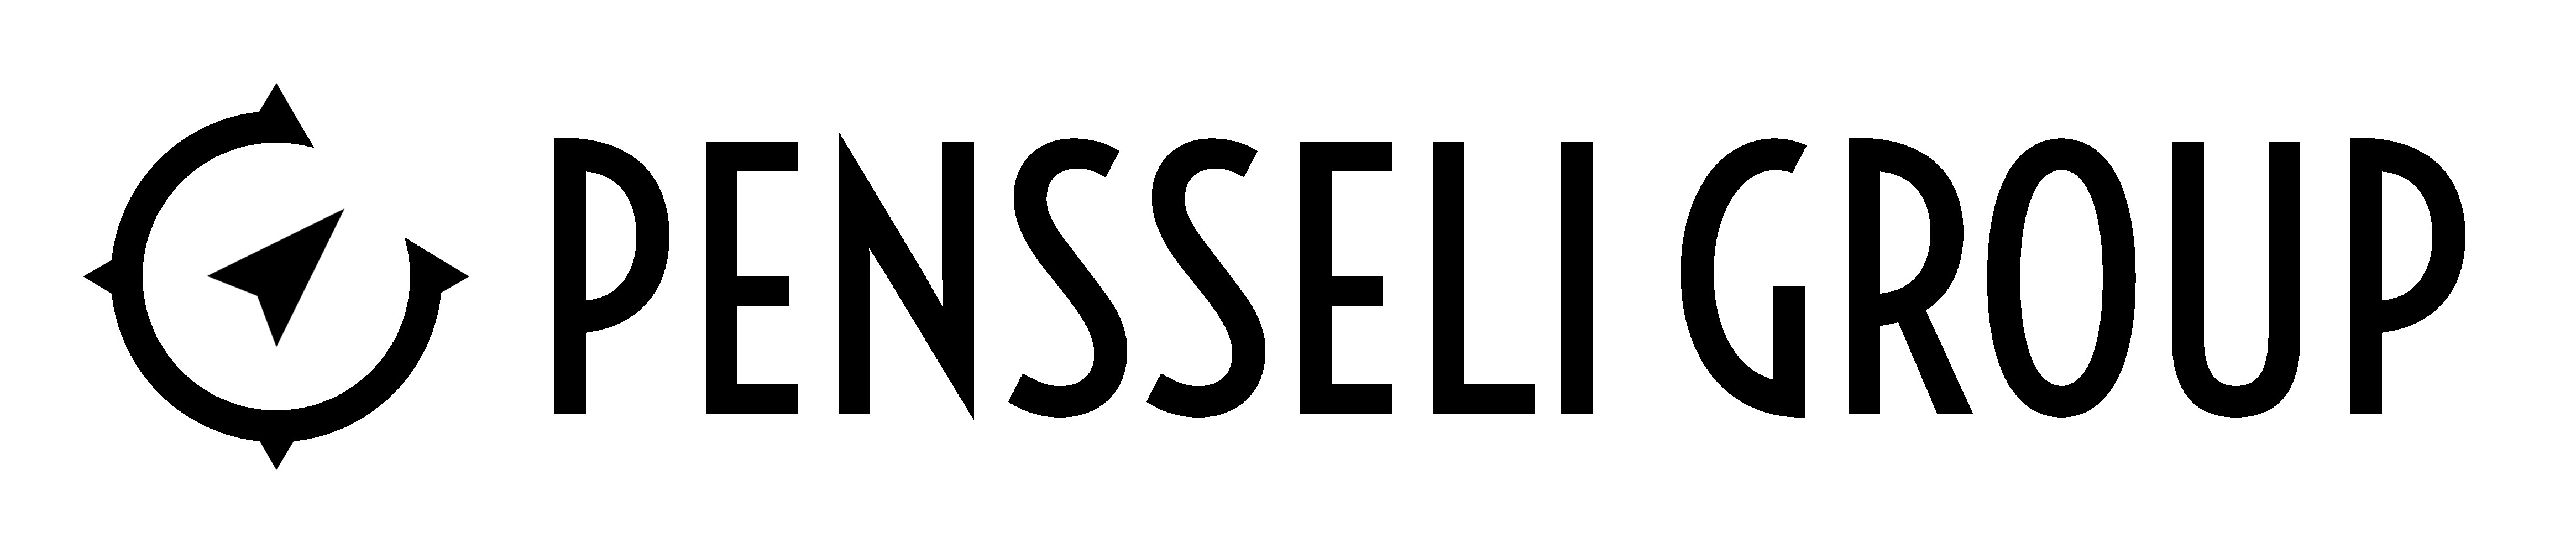 pensseli_group_text_logo